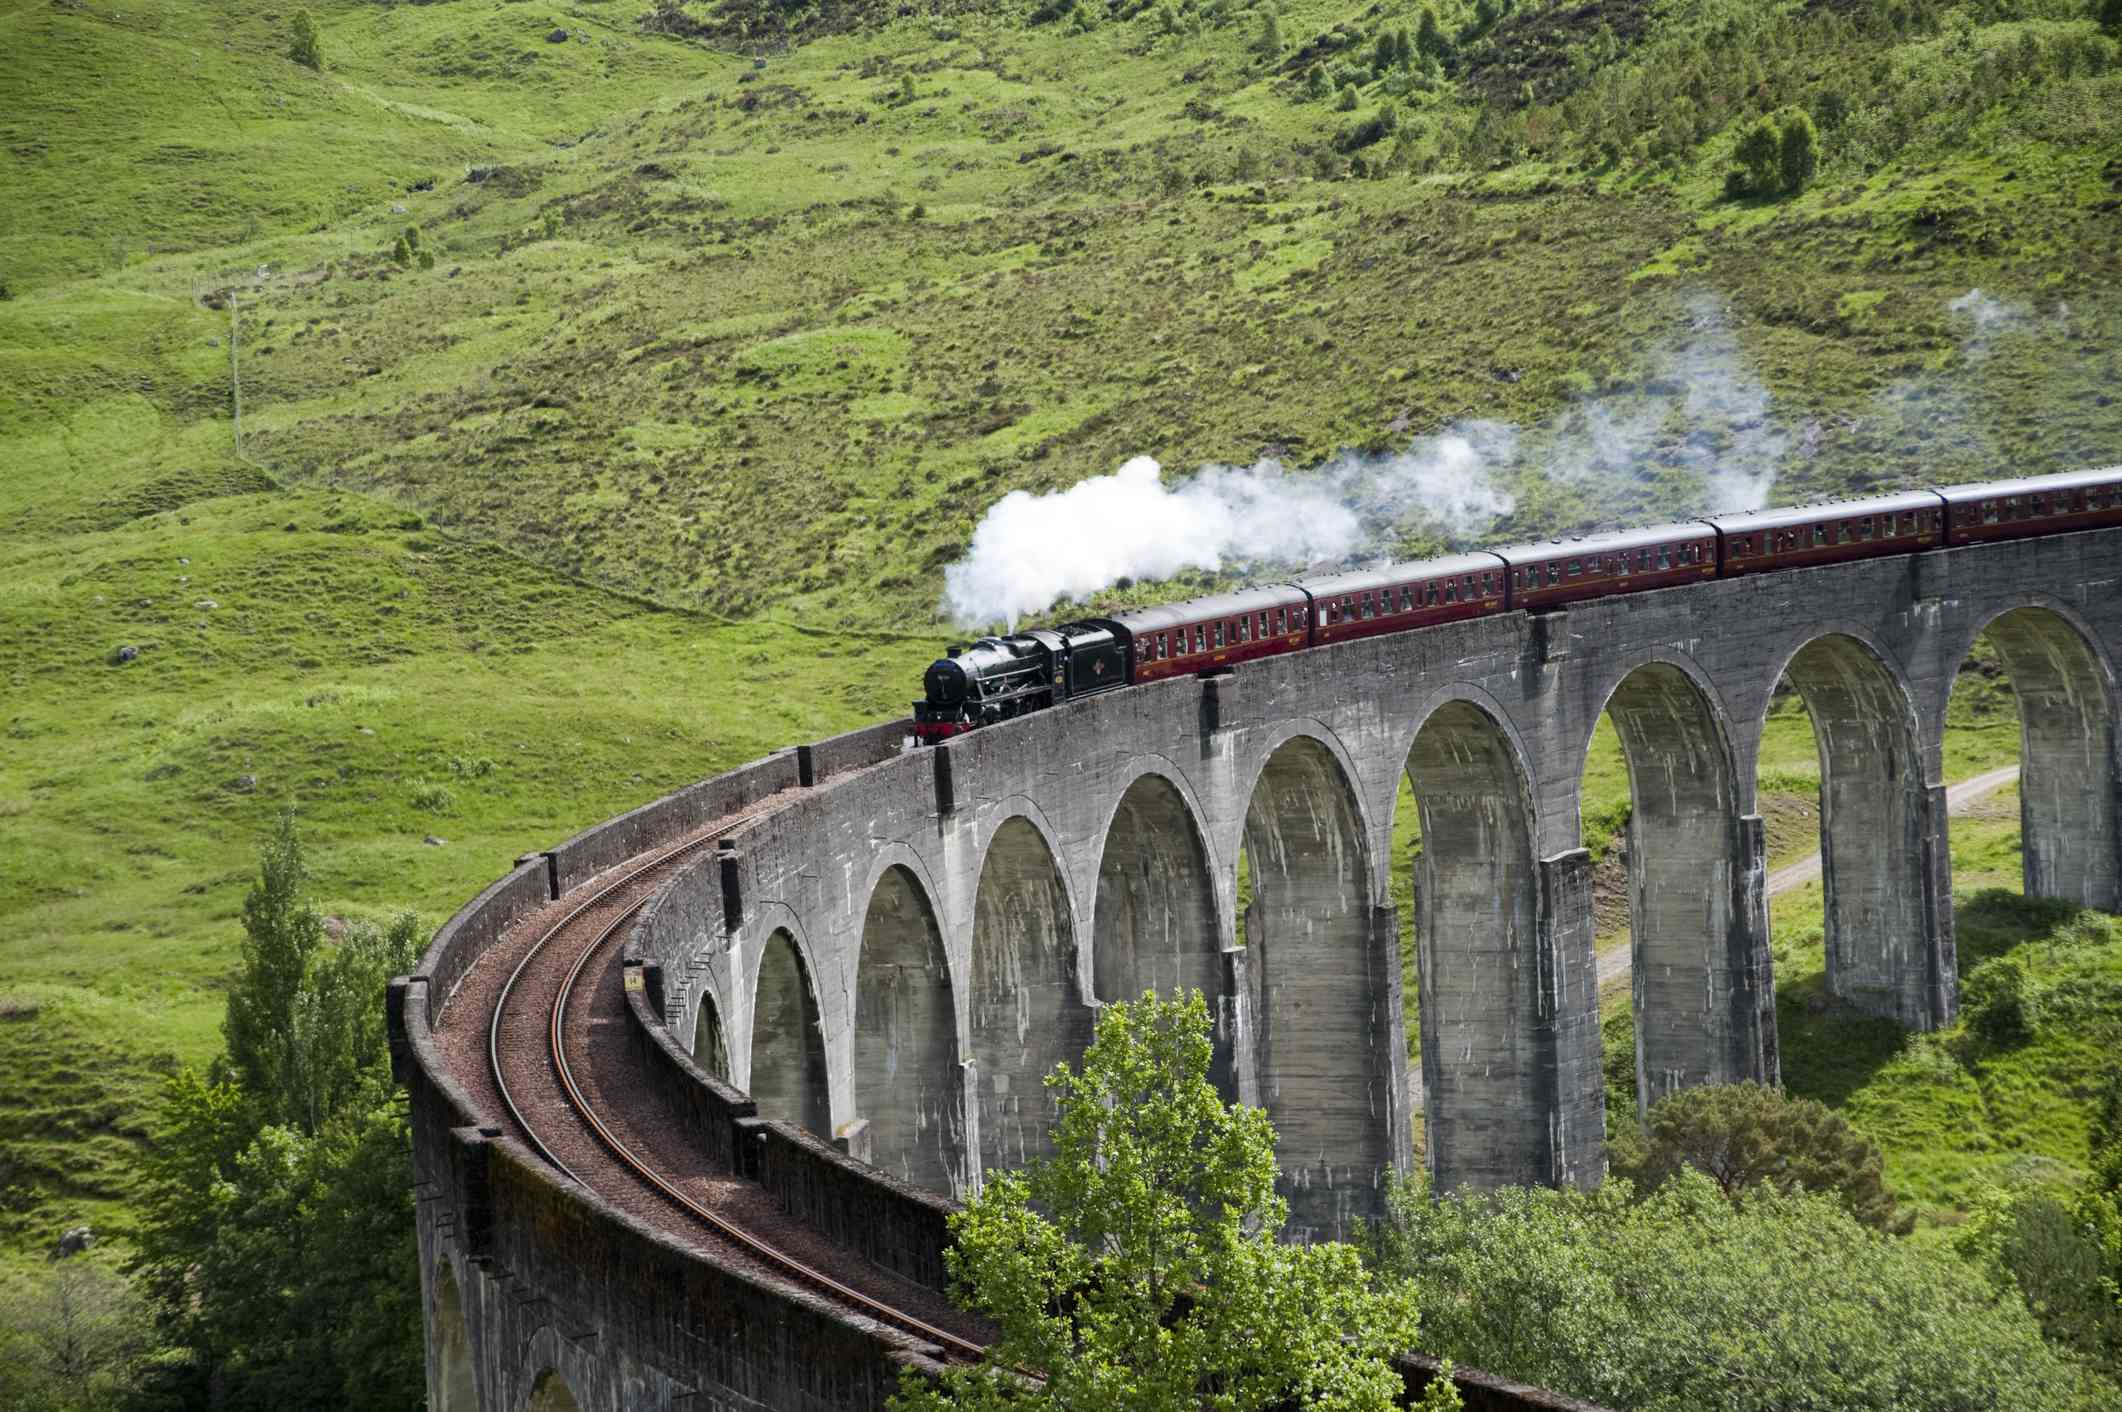 The Jacobite vintage steam train crosses the Glenfinnan viaduct.